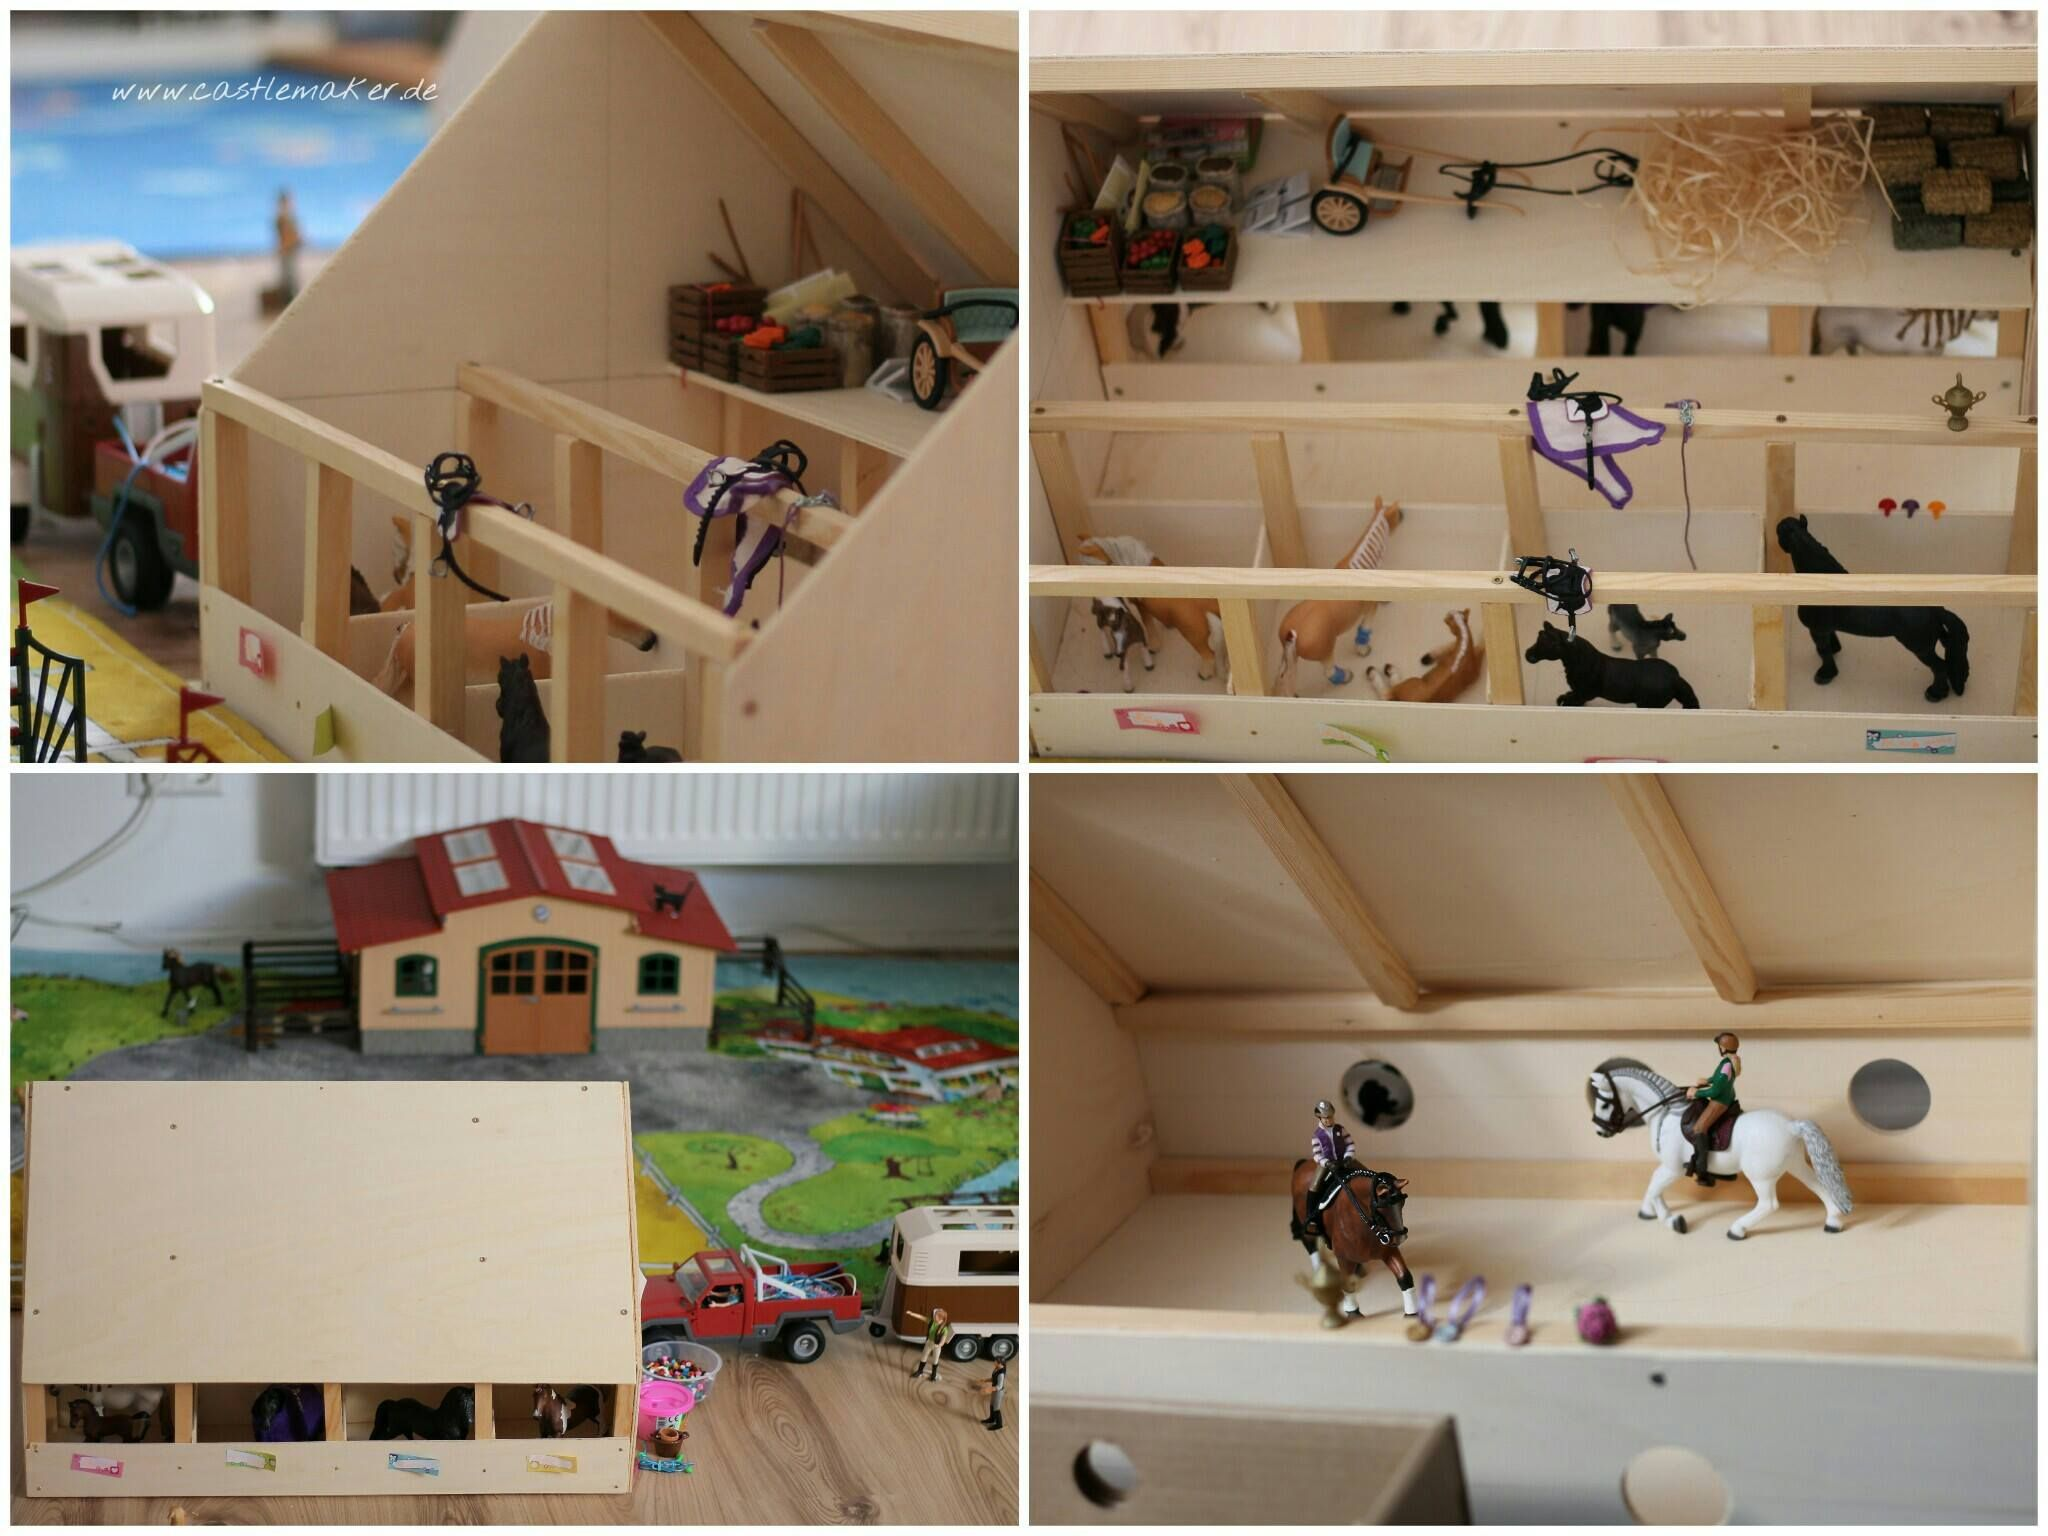 diy wir bauen einen schleich pferdestall reithalle dream stables horse and diys. Black Bedroom Furniture Sets. Home Design Ideas